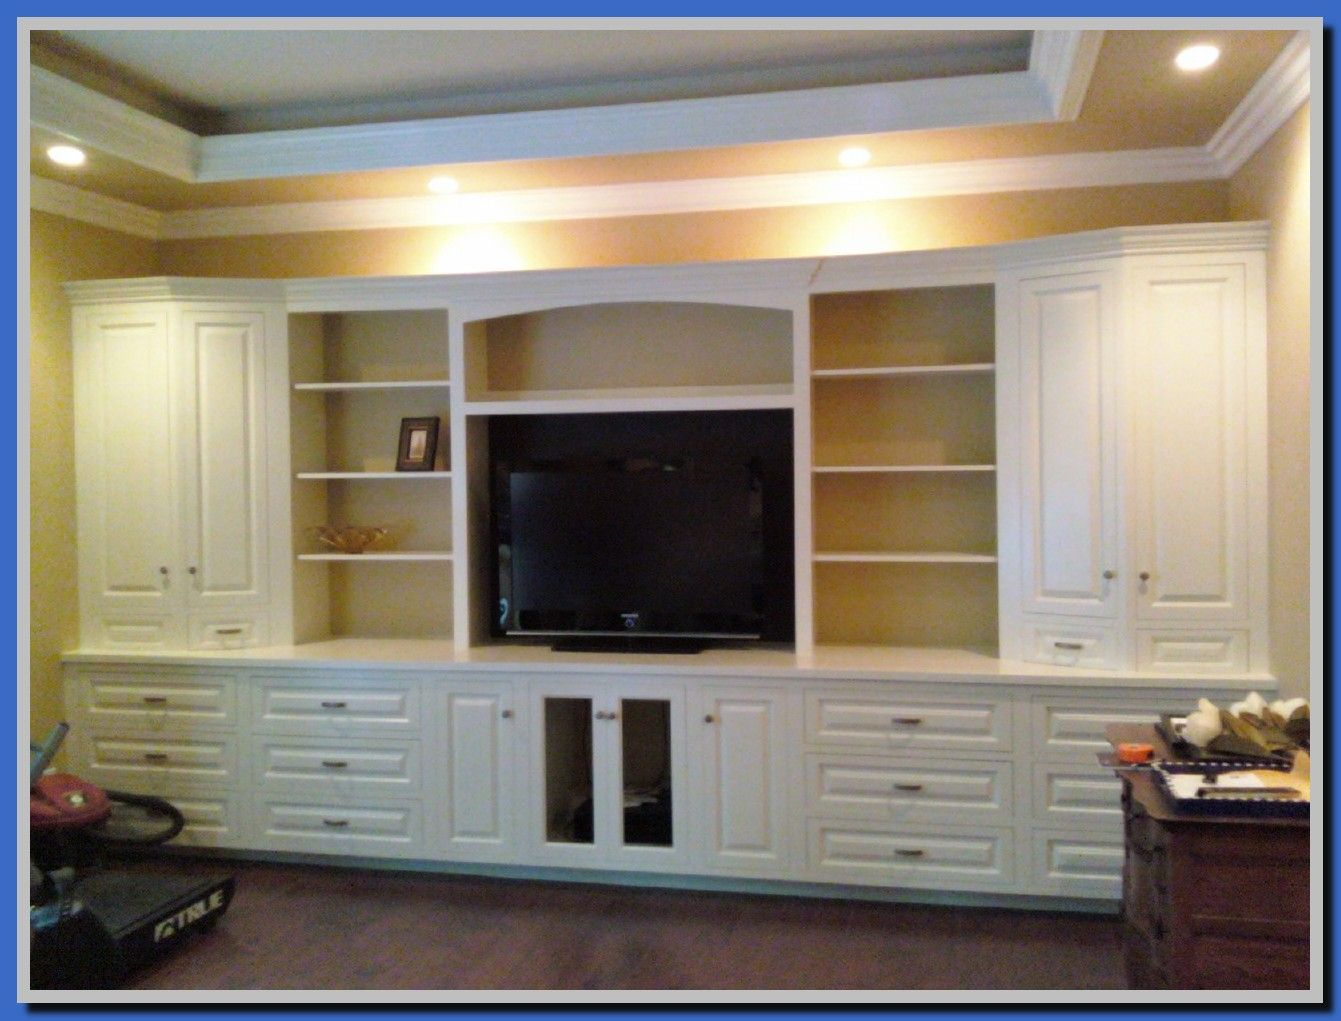 49 Reference Of Wall Bed Cabinet Plans Bedroom Wall Units Wall Storage Unit Built In Wall Units